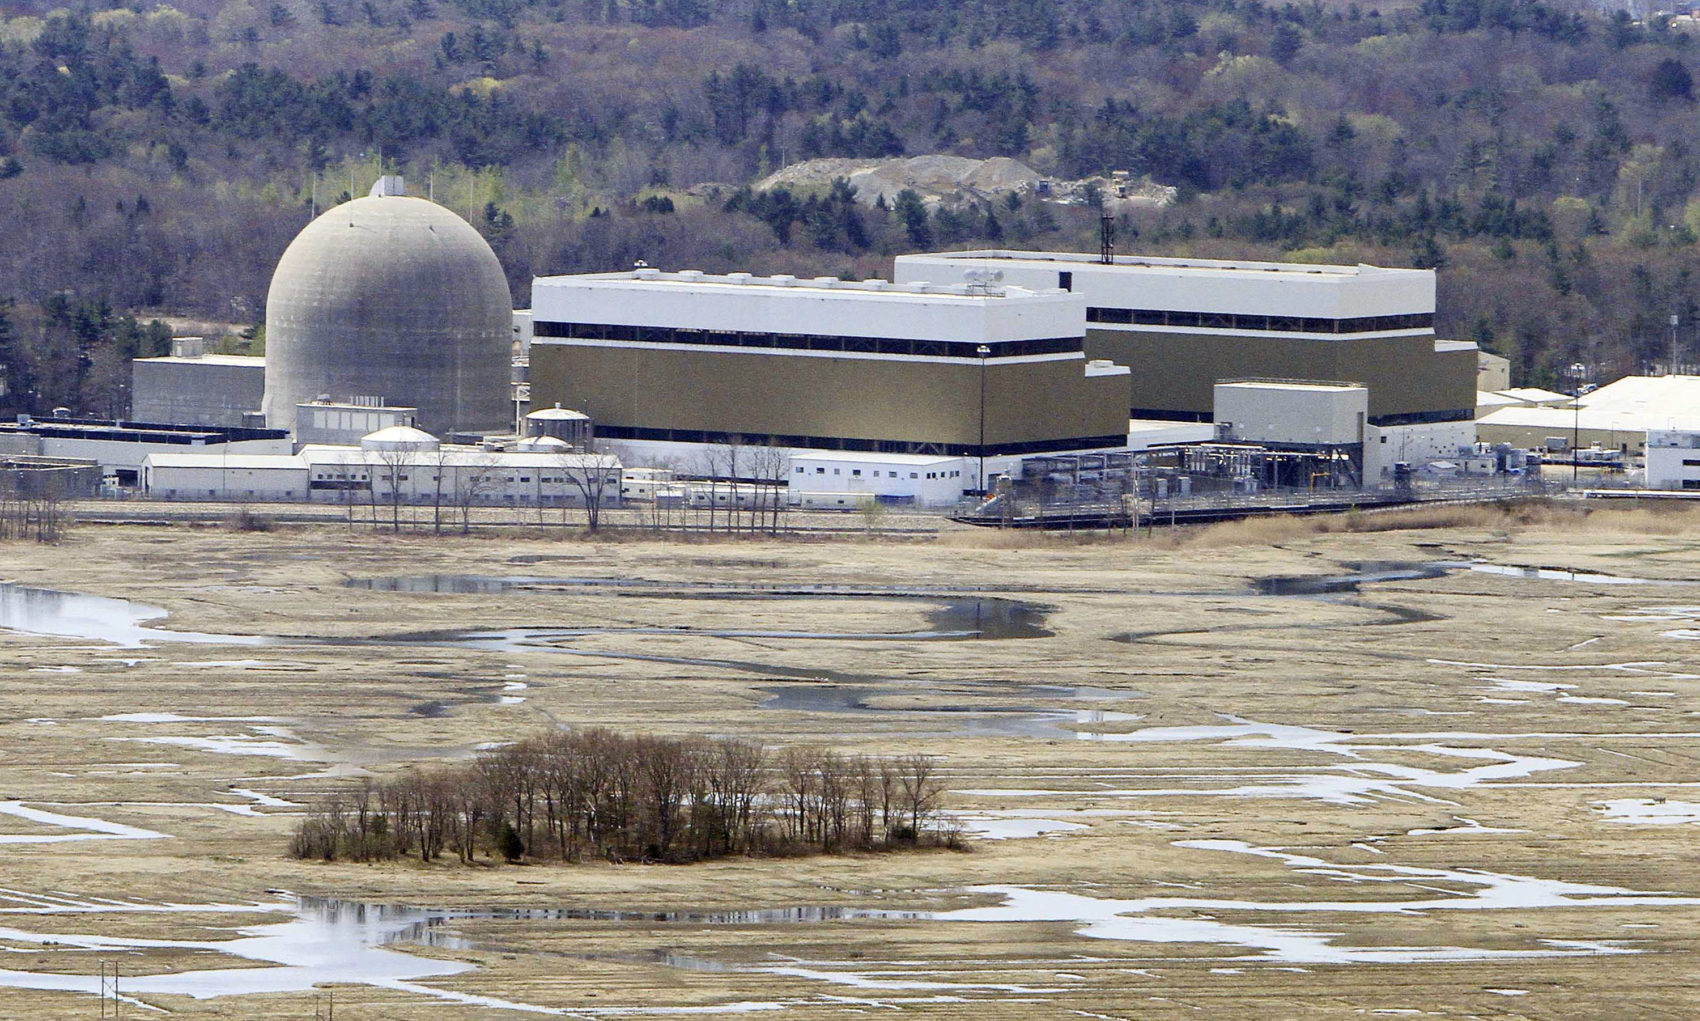 The Seabrook nuclear power plant in Seabrook, N.H., in a 2011 file photo (Jim Cole/AP)